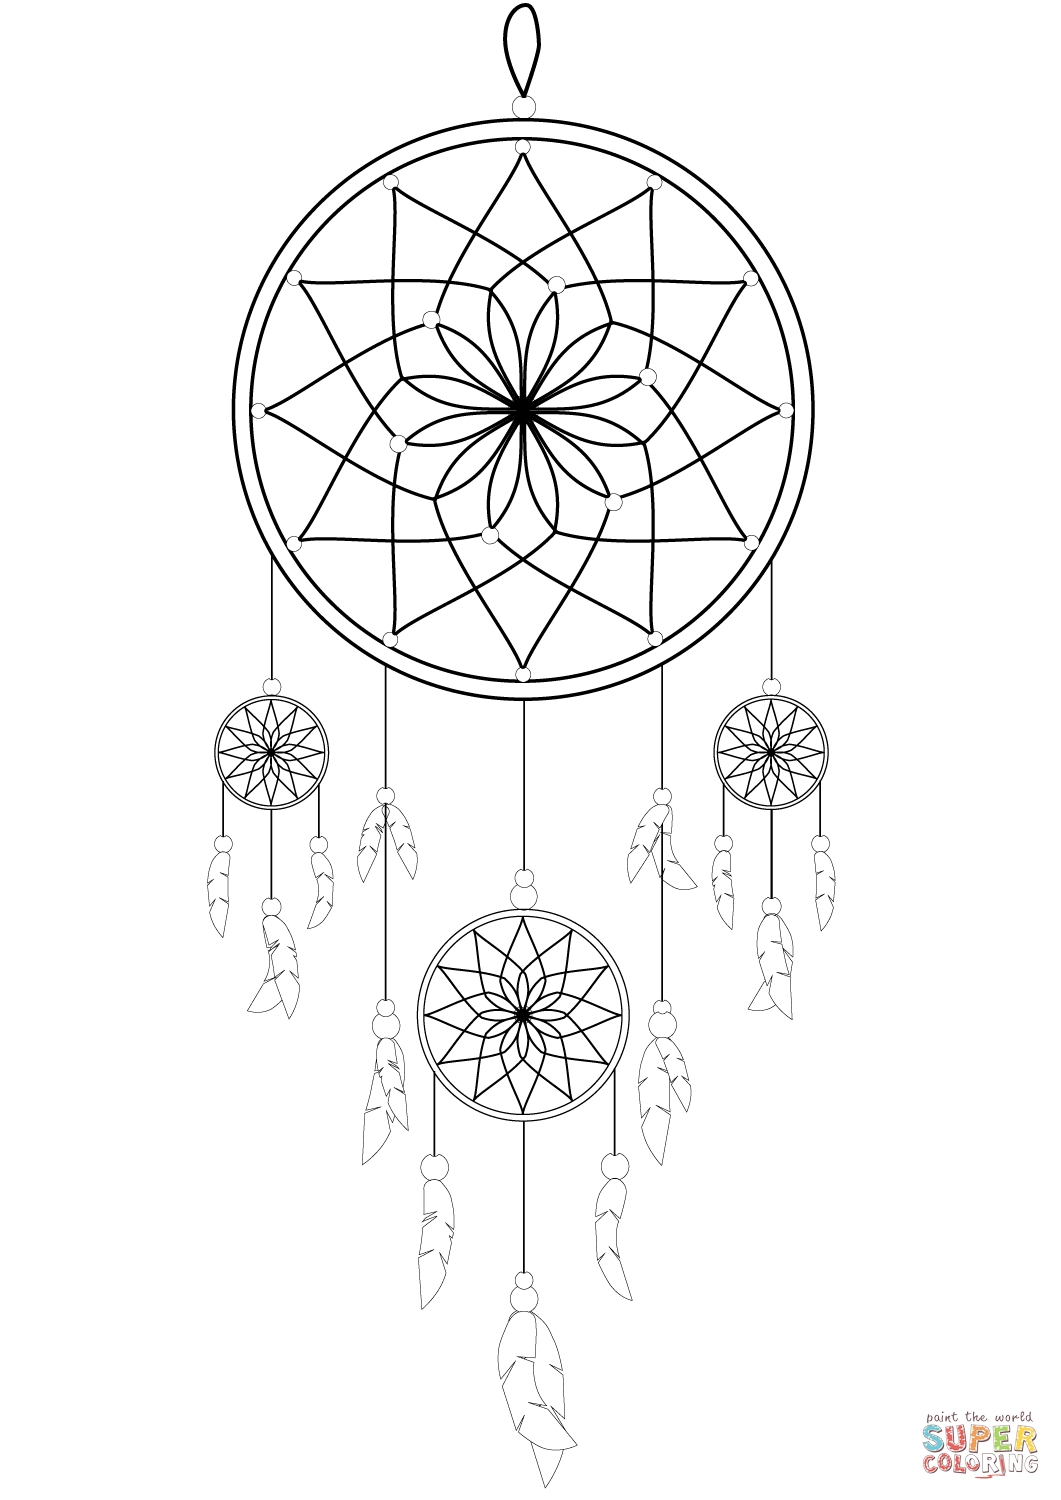 black and white dream catchers coloring pages | Dream Catcher Drawing Easy at GetDrawings.com | Free for ...